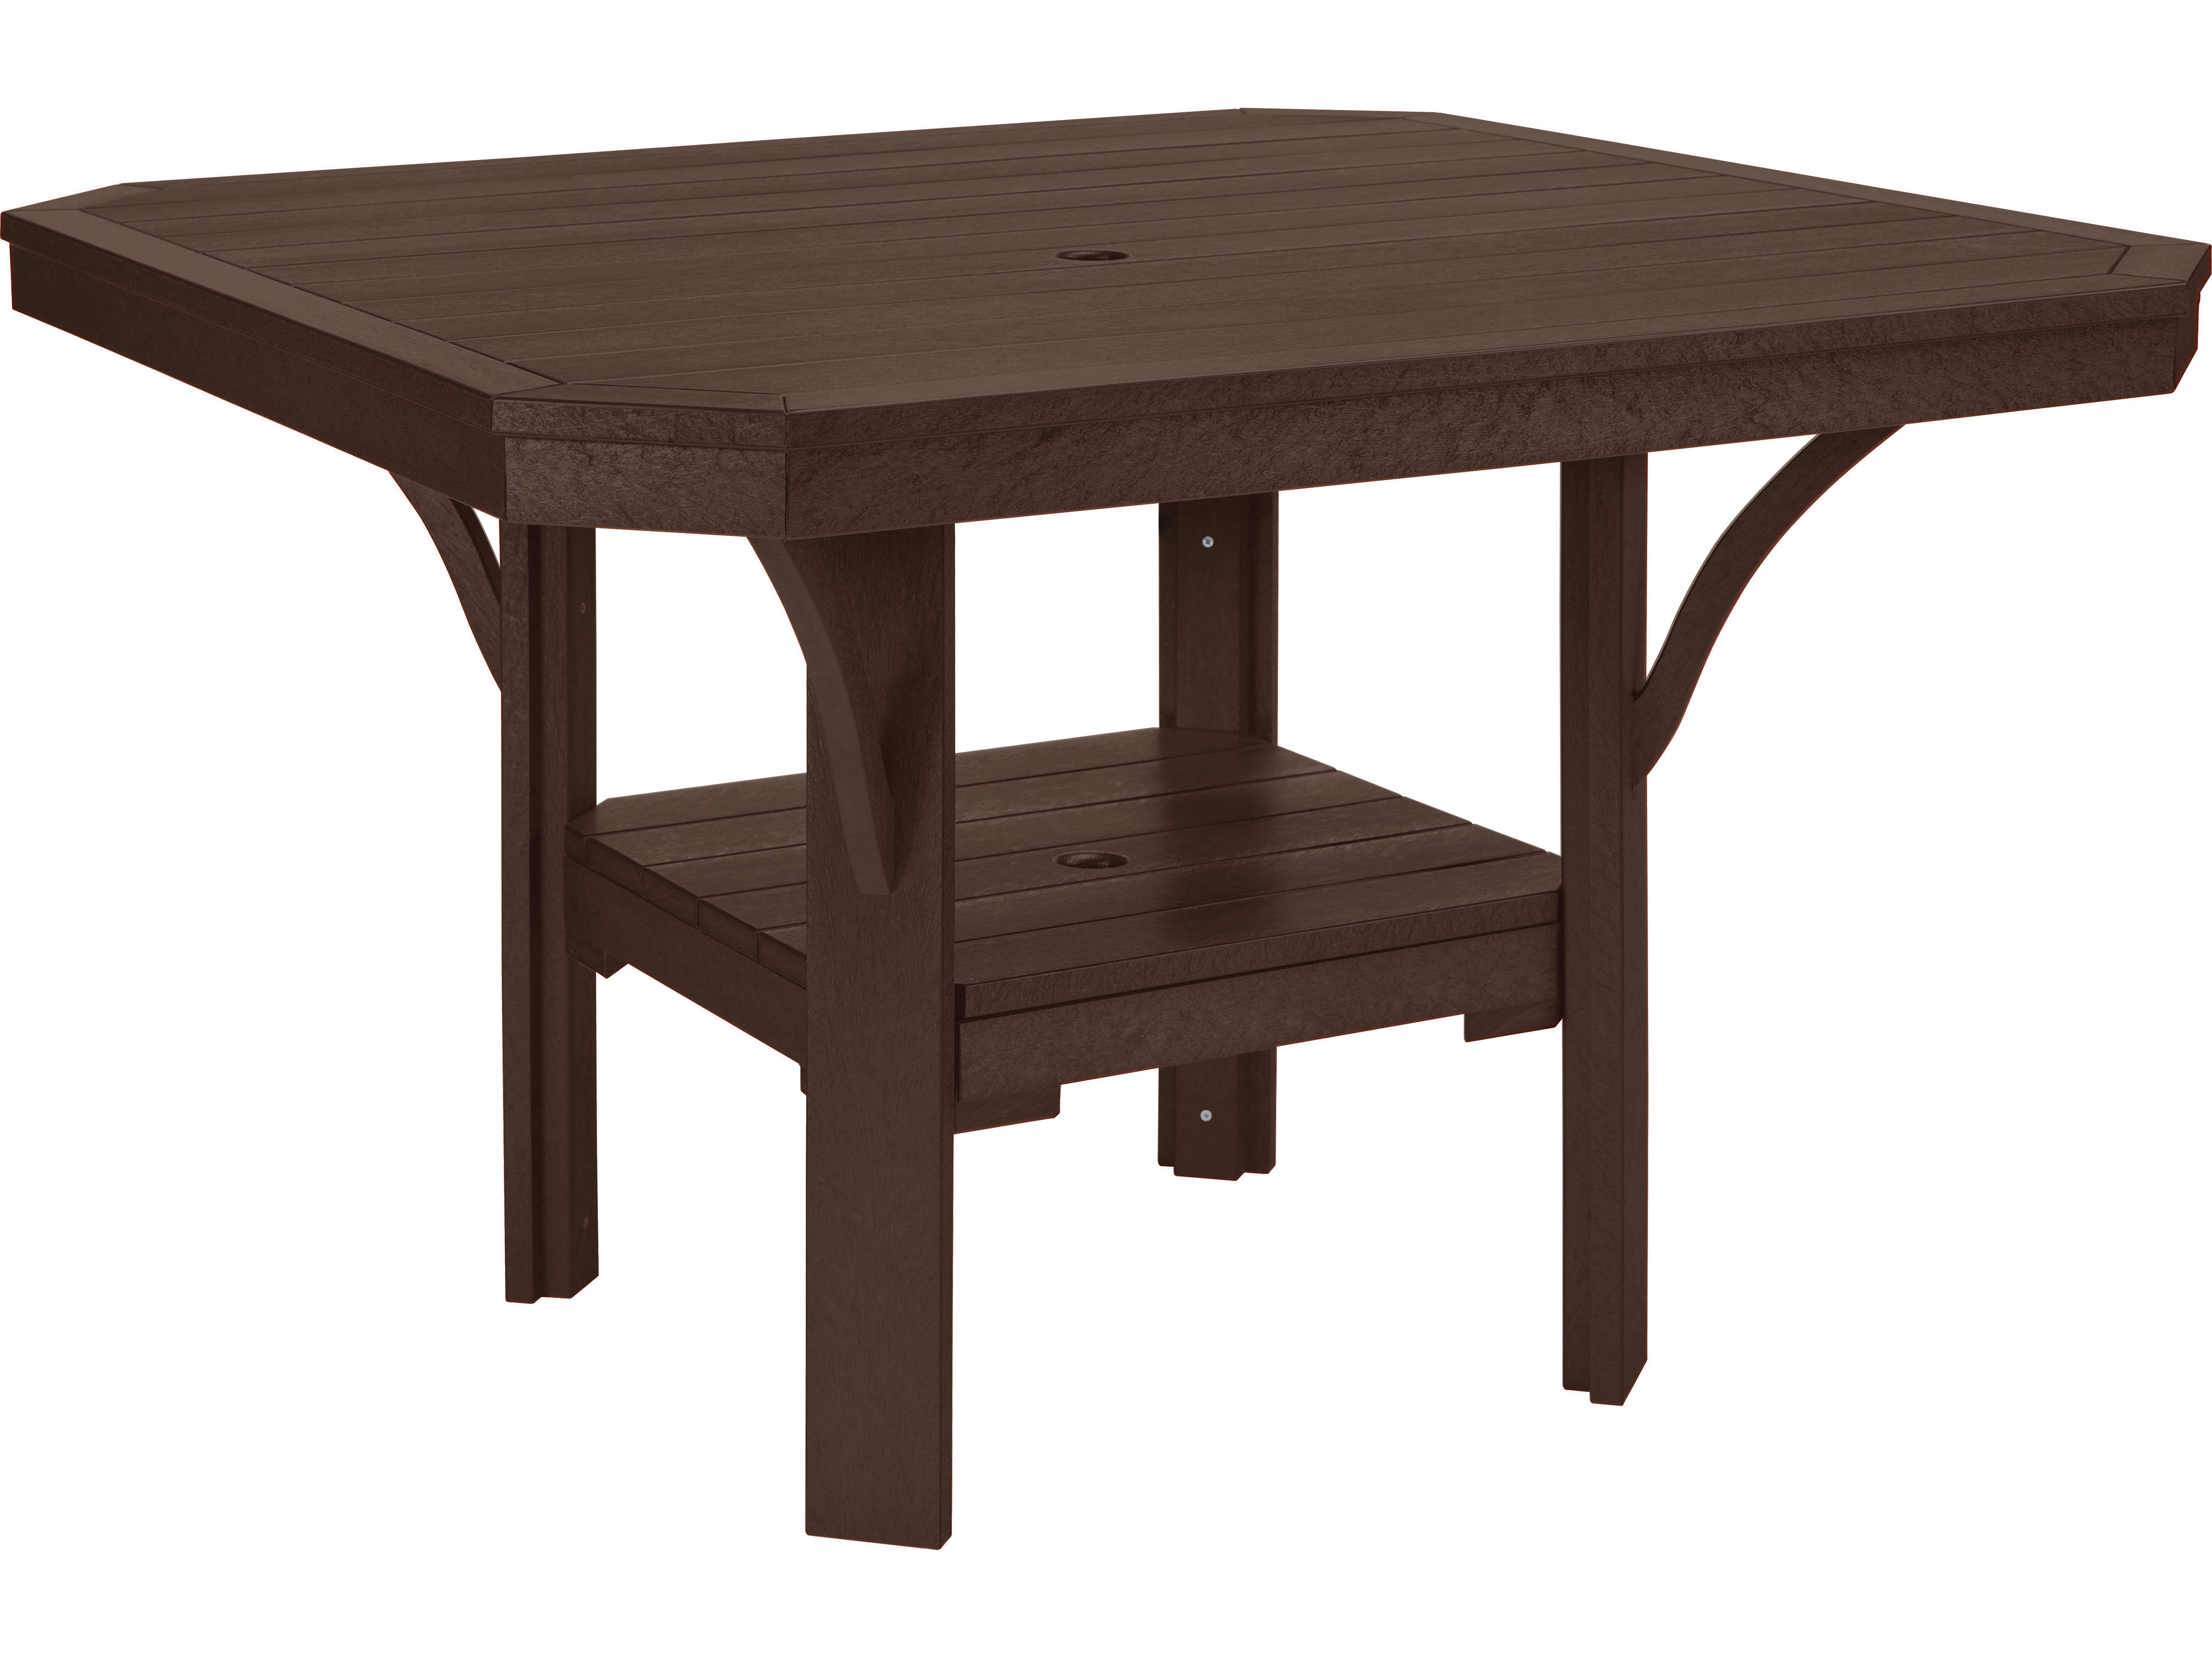 Trex Arsons Recycled Plastic Patio Benche Trxtx3680n furthermore Product furthermore Outdoor Greatroom Montego Wicker Rectangular Patio Fire Pit Table Ogmg1242blsmk likewise Frame Finishes furthermore Product. on outdoor waste receptacles for patio